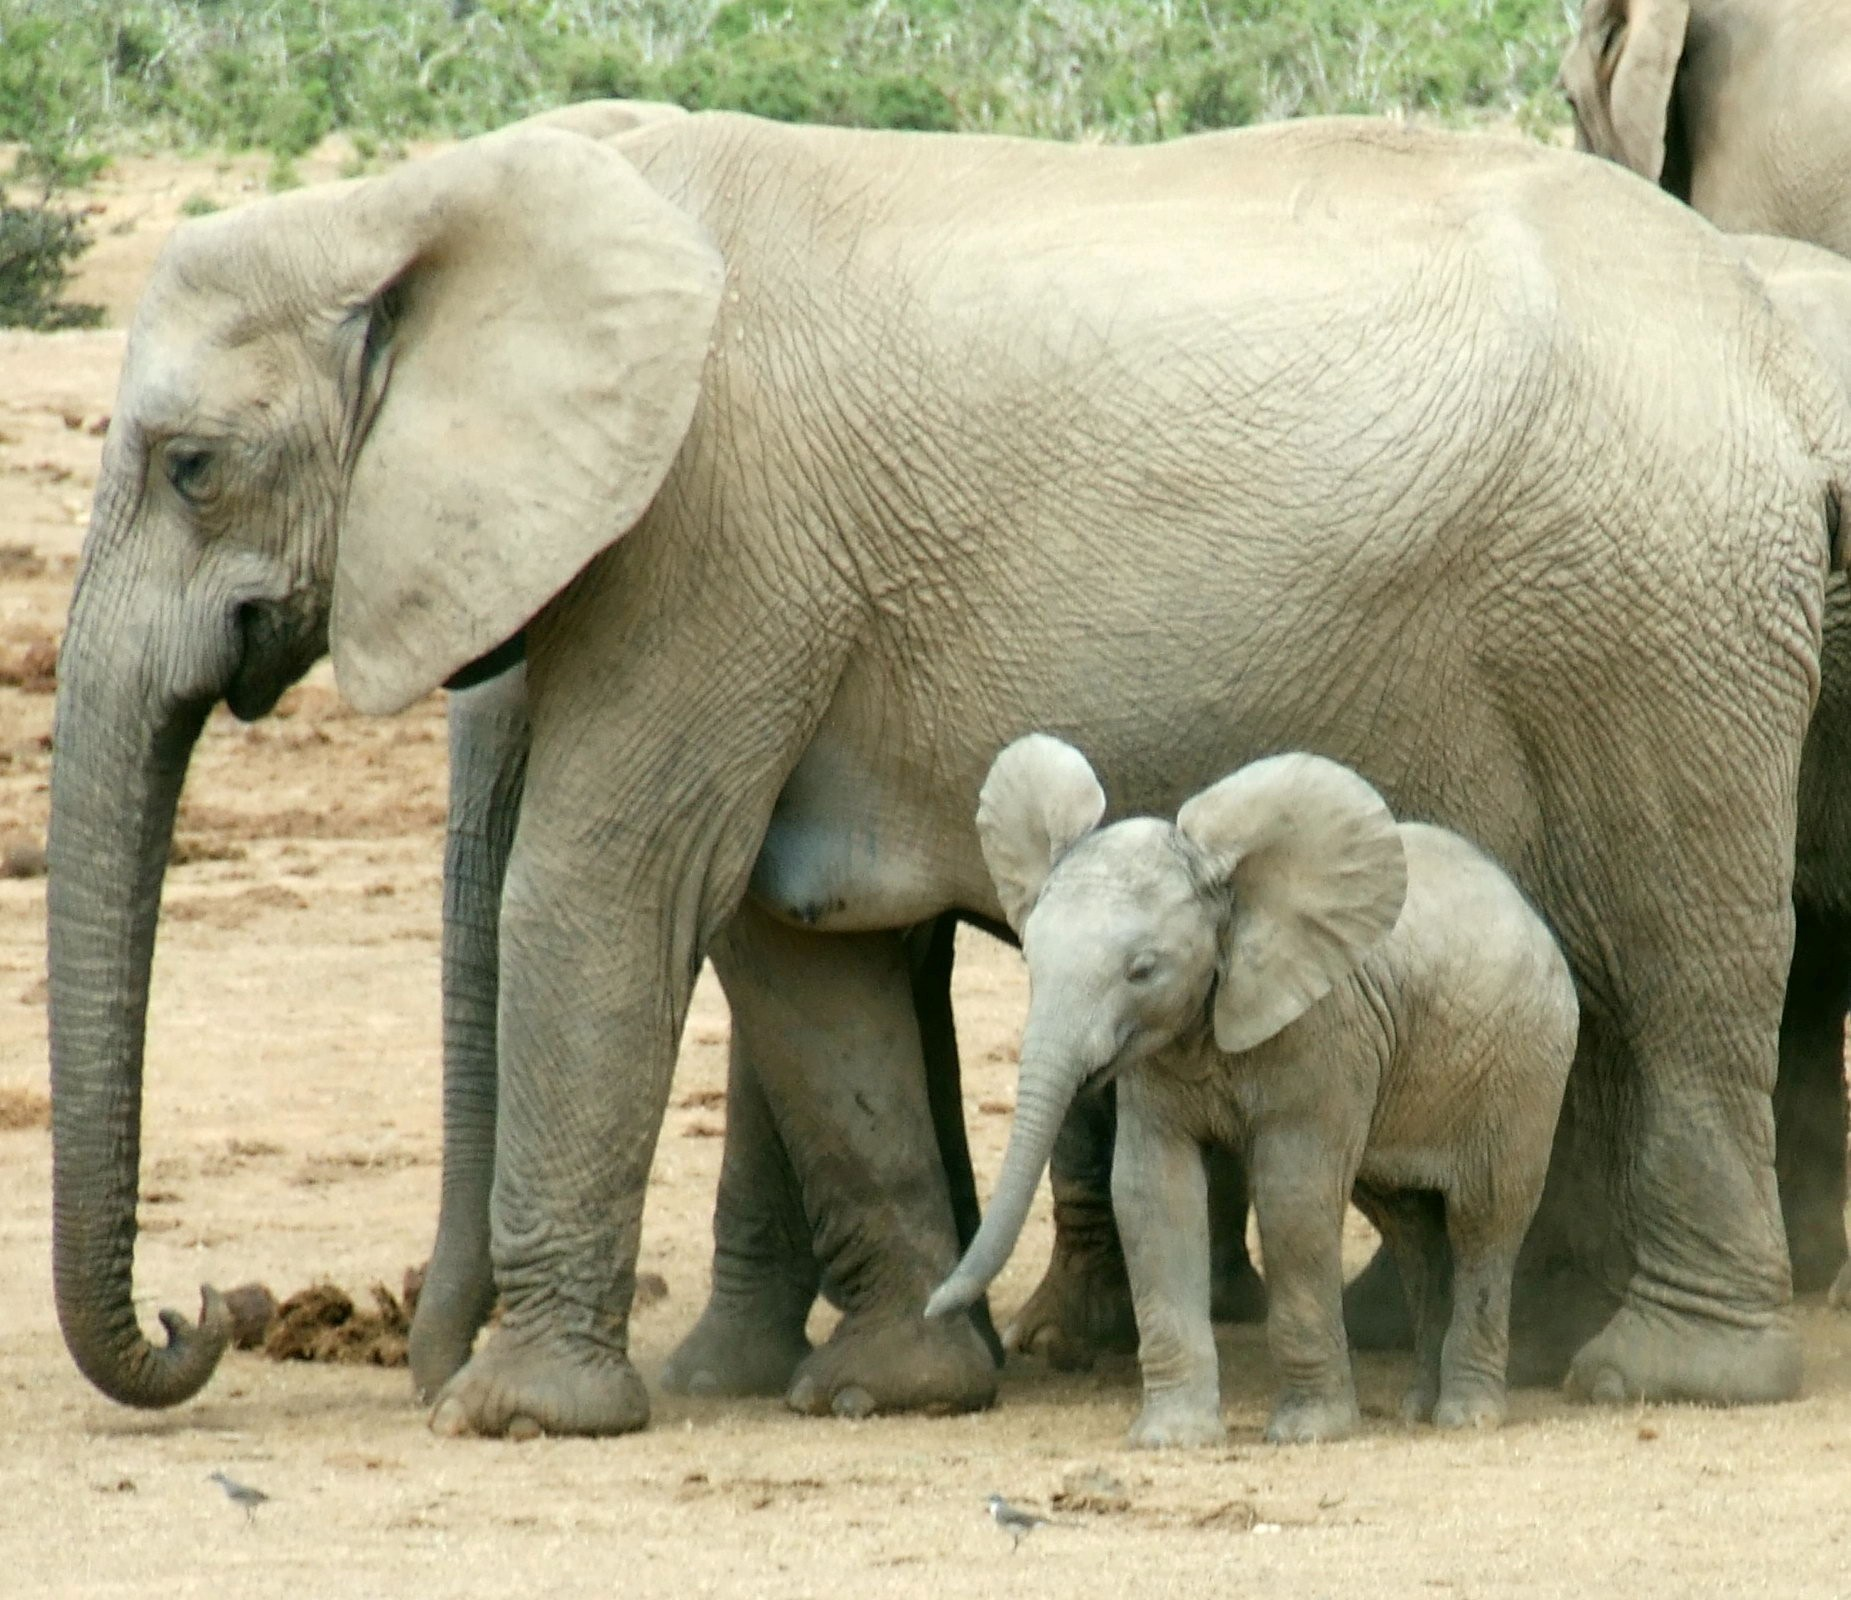 Elephant adults only 11